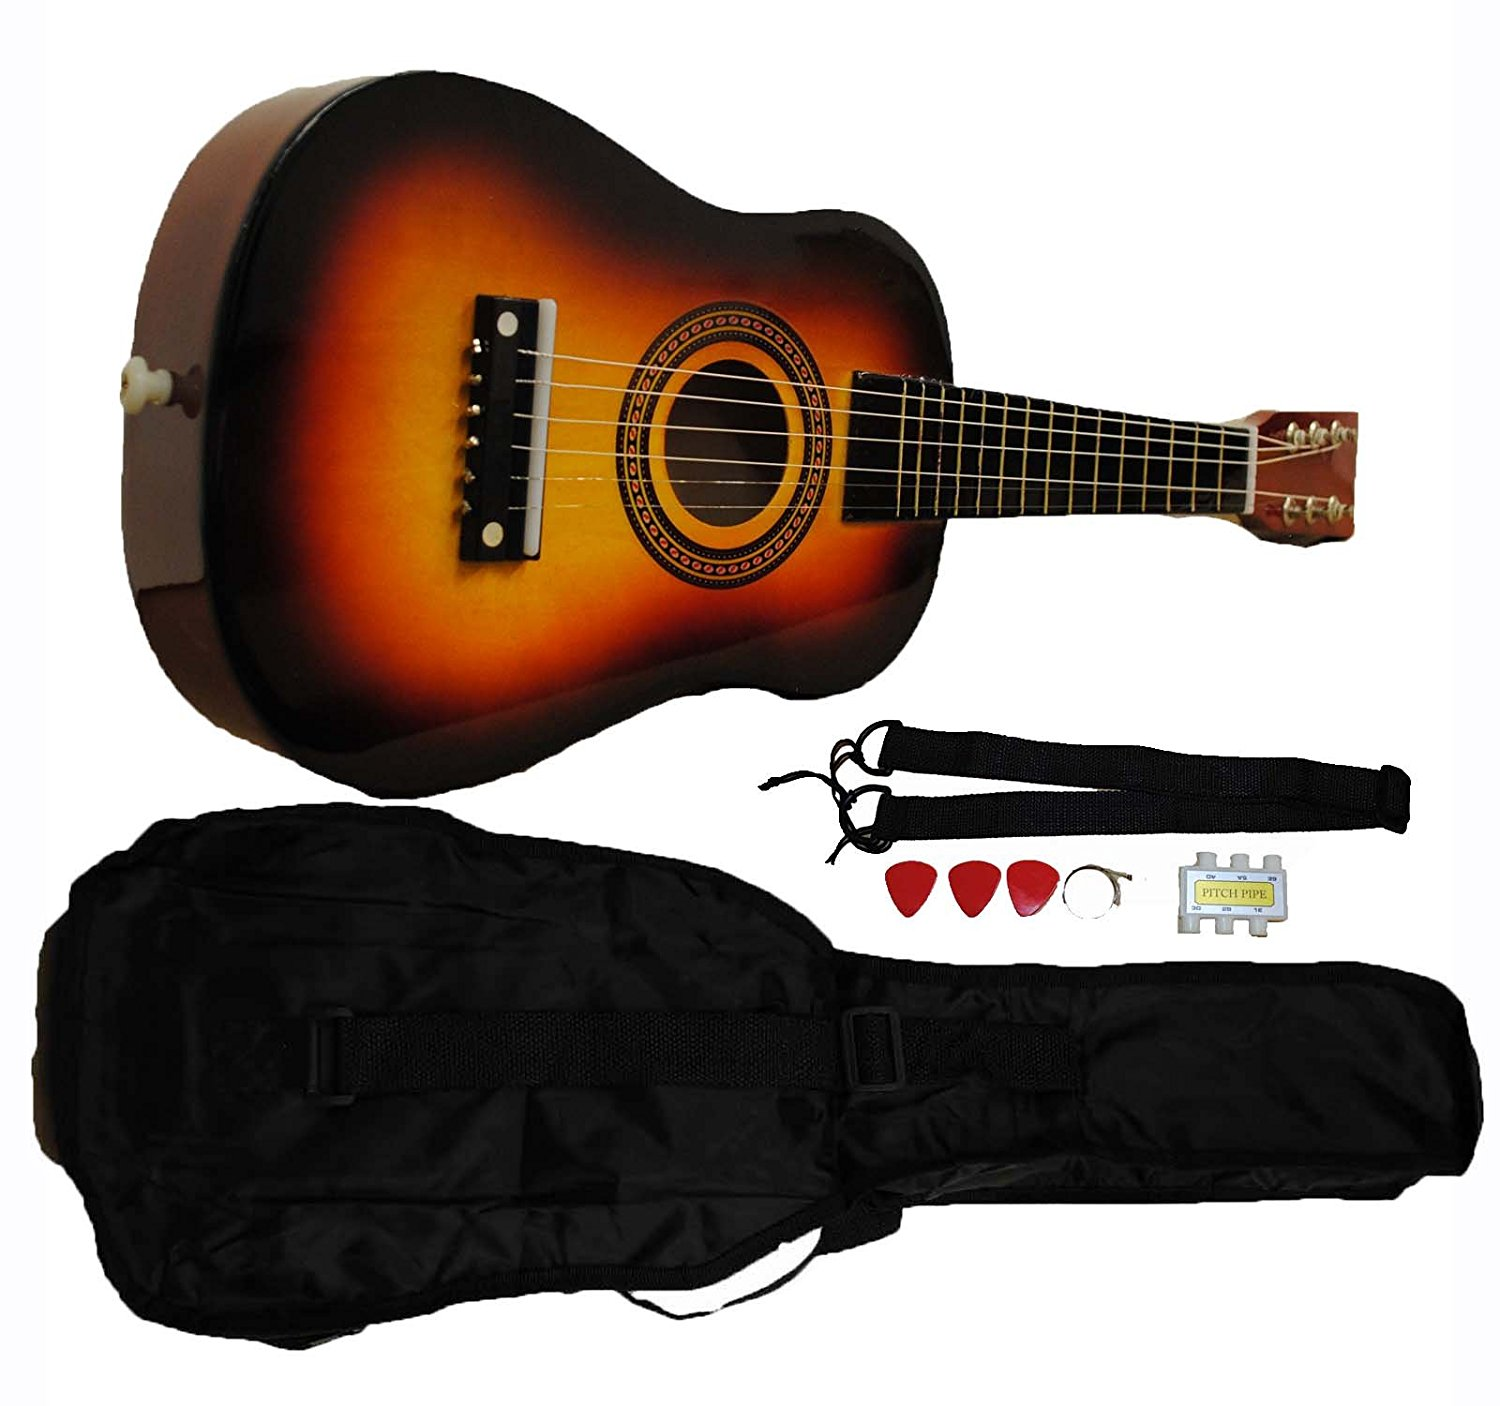 Mini Kids Acoustic Toy Guitar Kit Gig Bag + Picks + Strap + Tuner - Sunburst